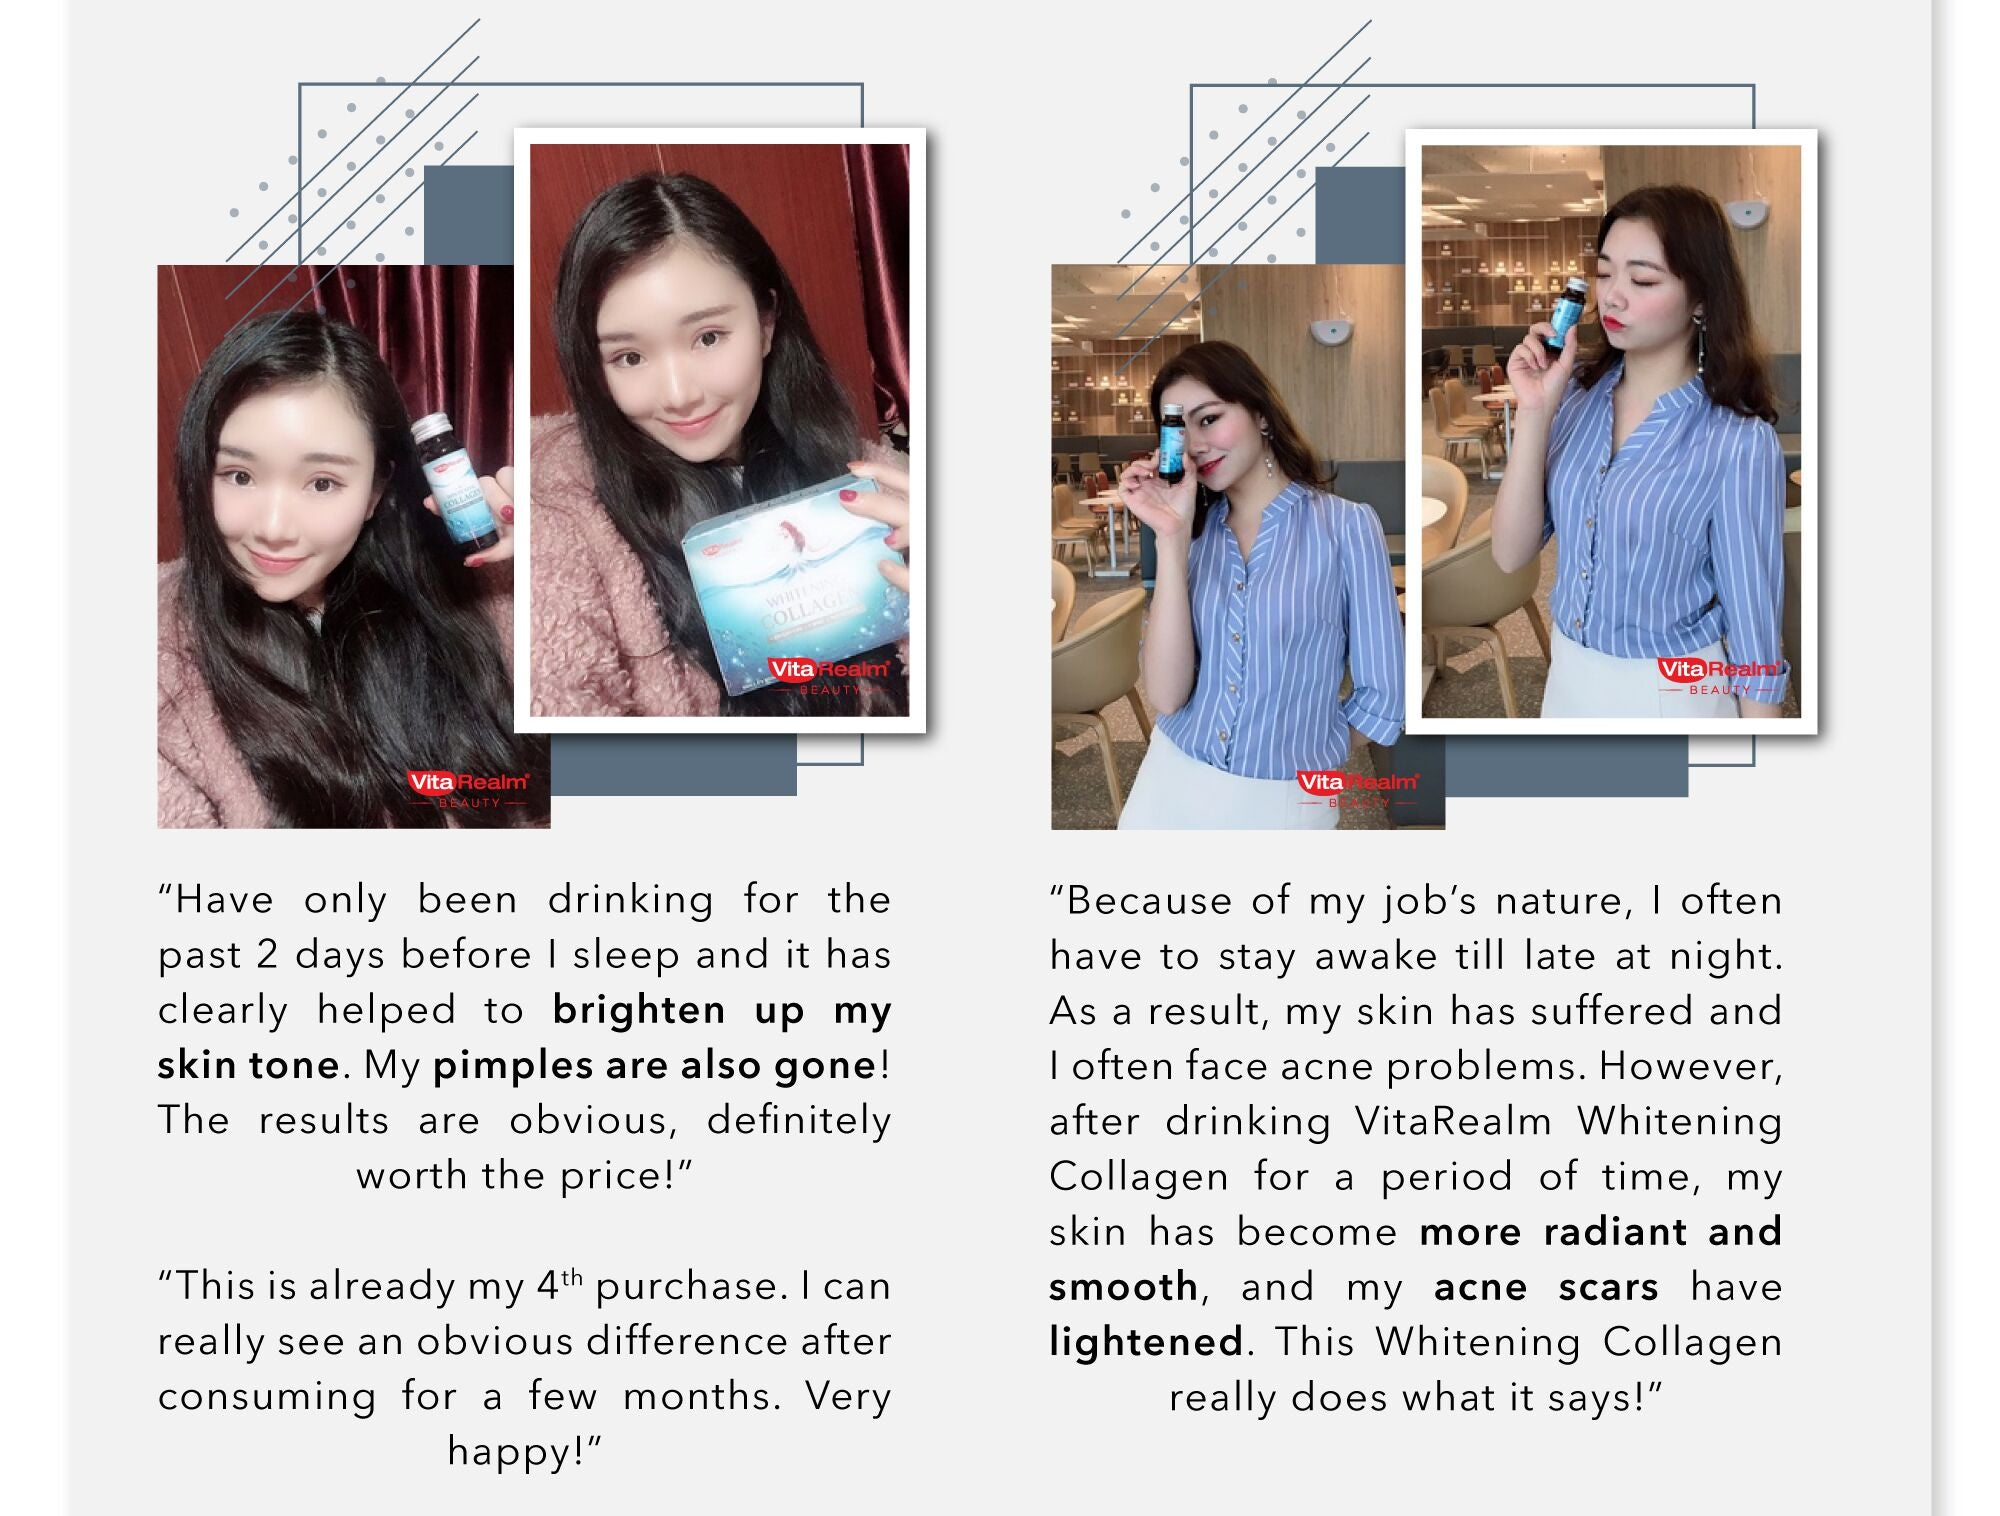 Vitarealm Whitening Collagen is the number 1 skin radiant drink in Singapore